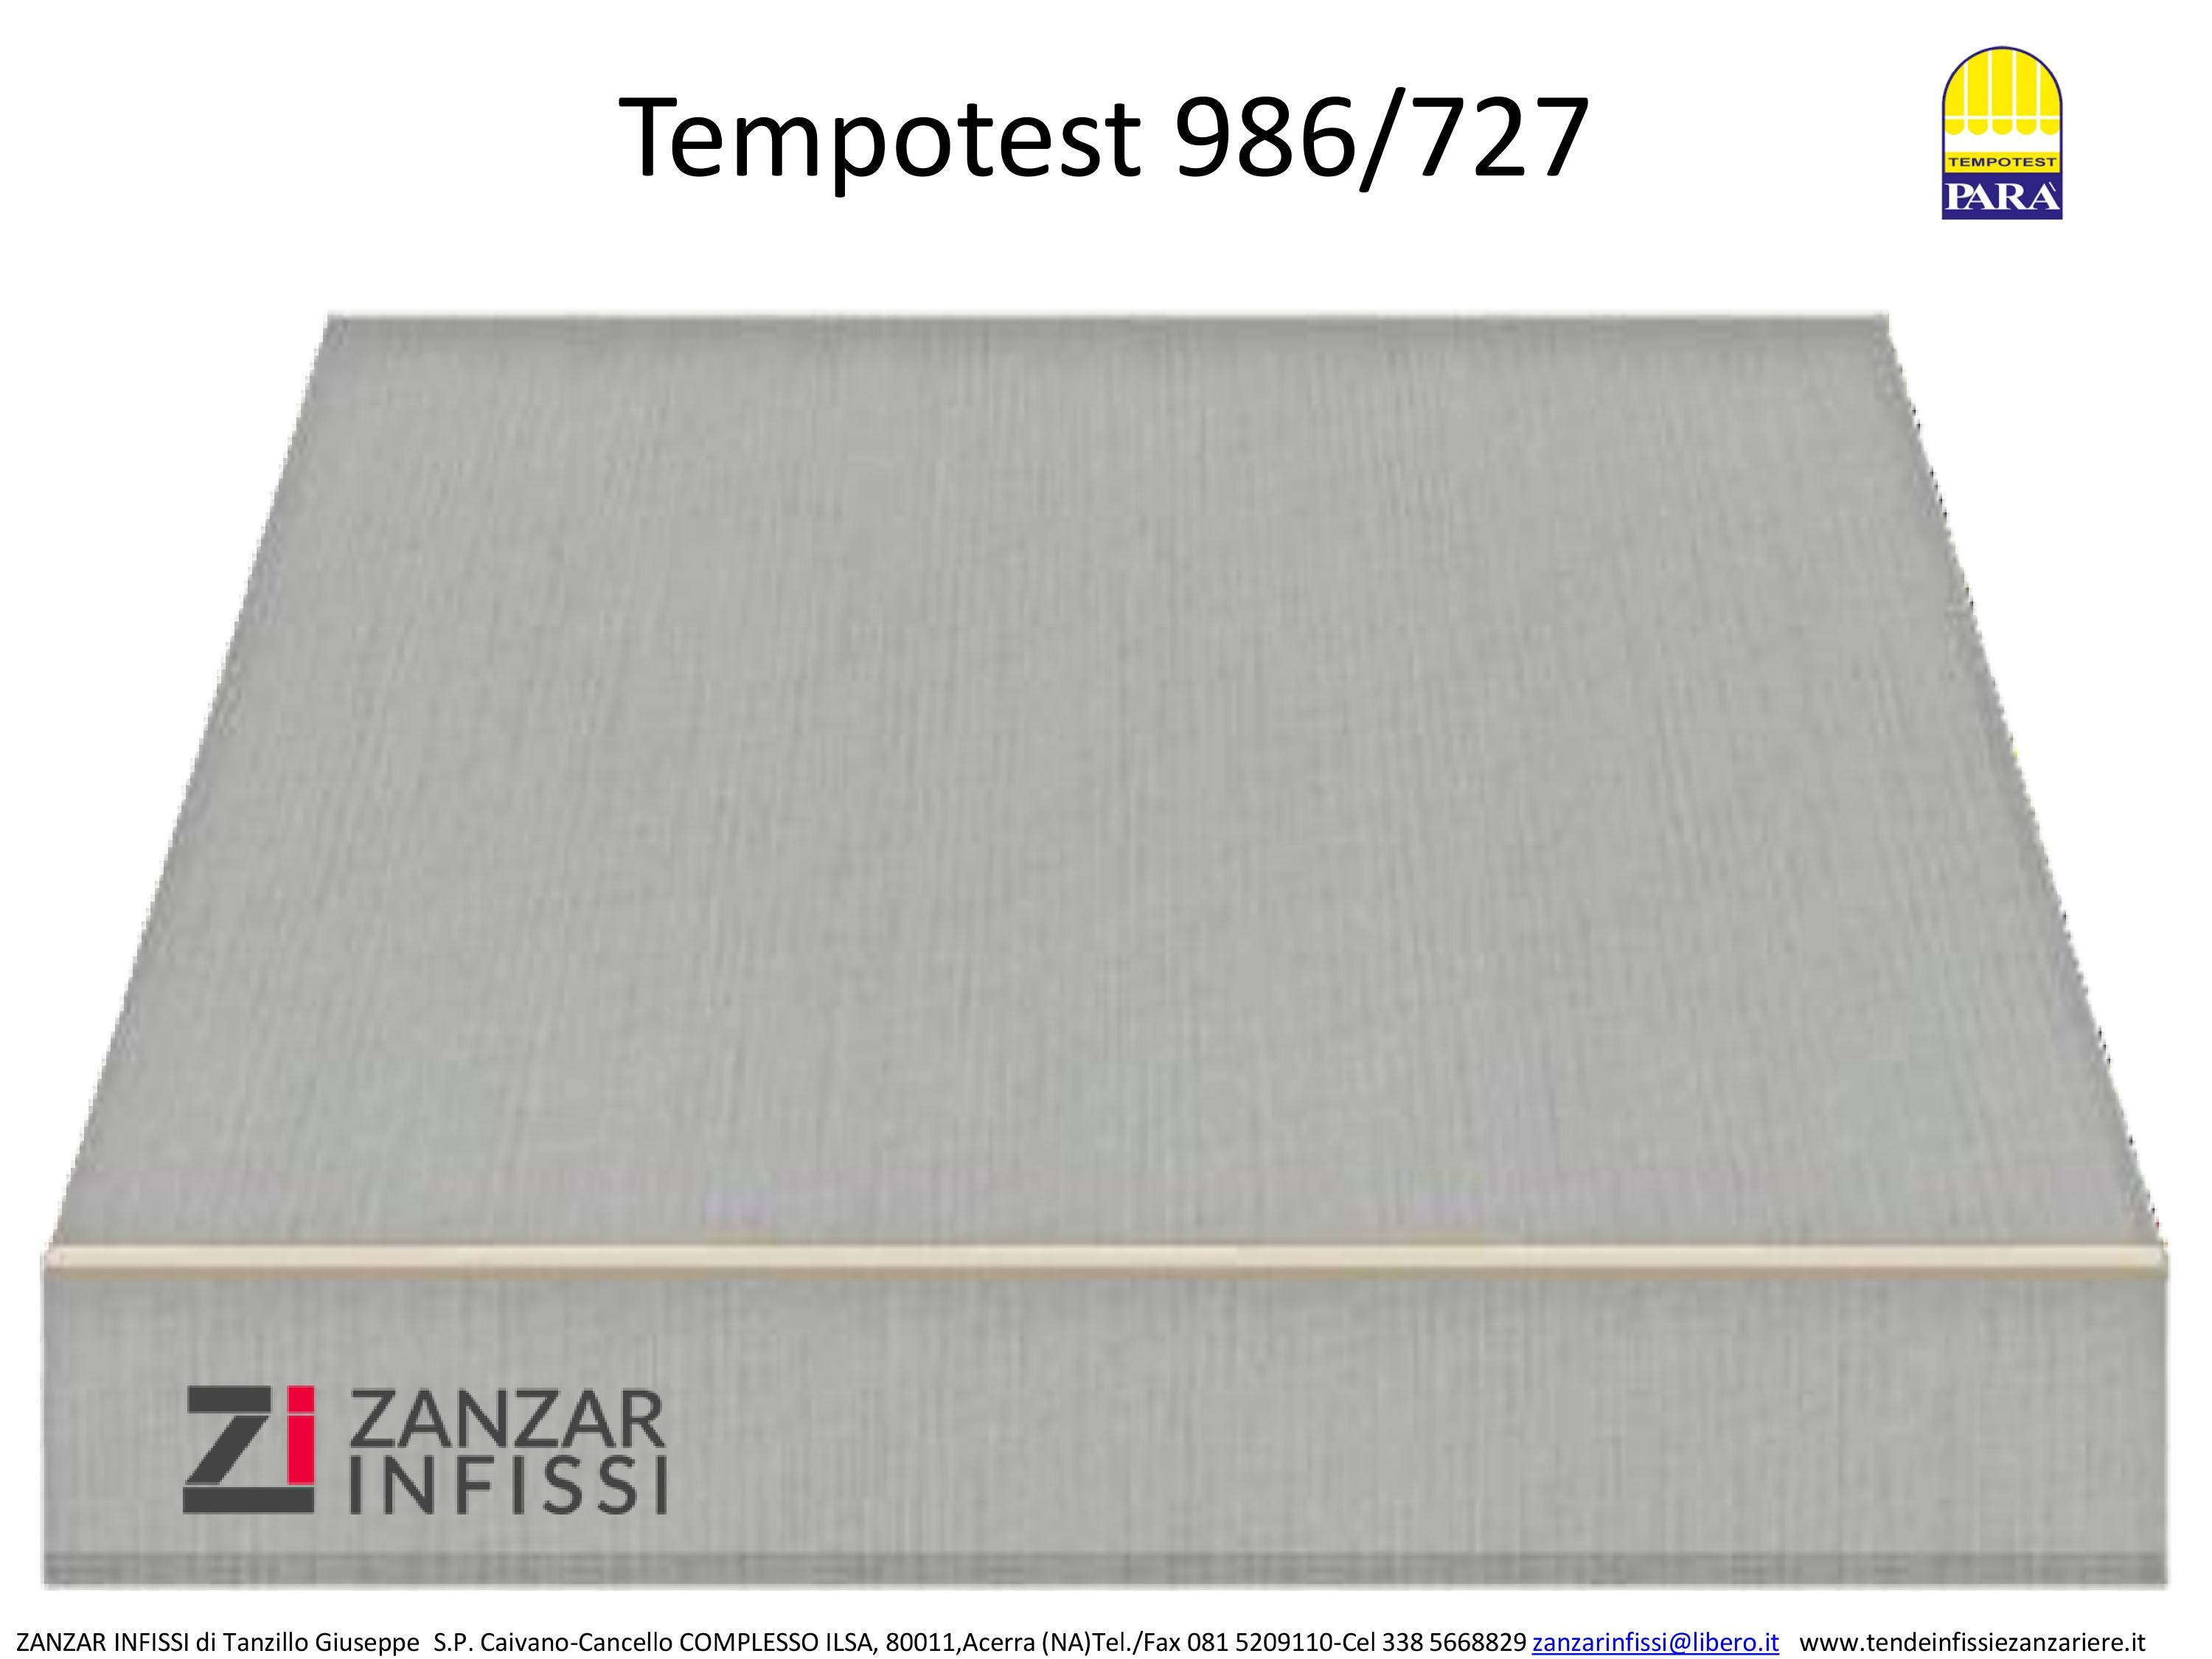 Tempotest 986/727